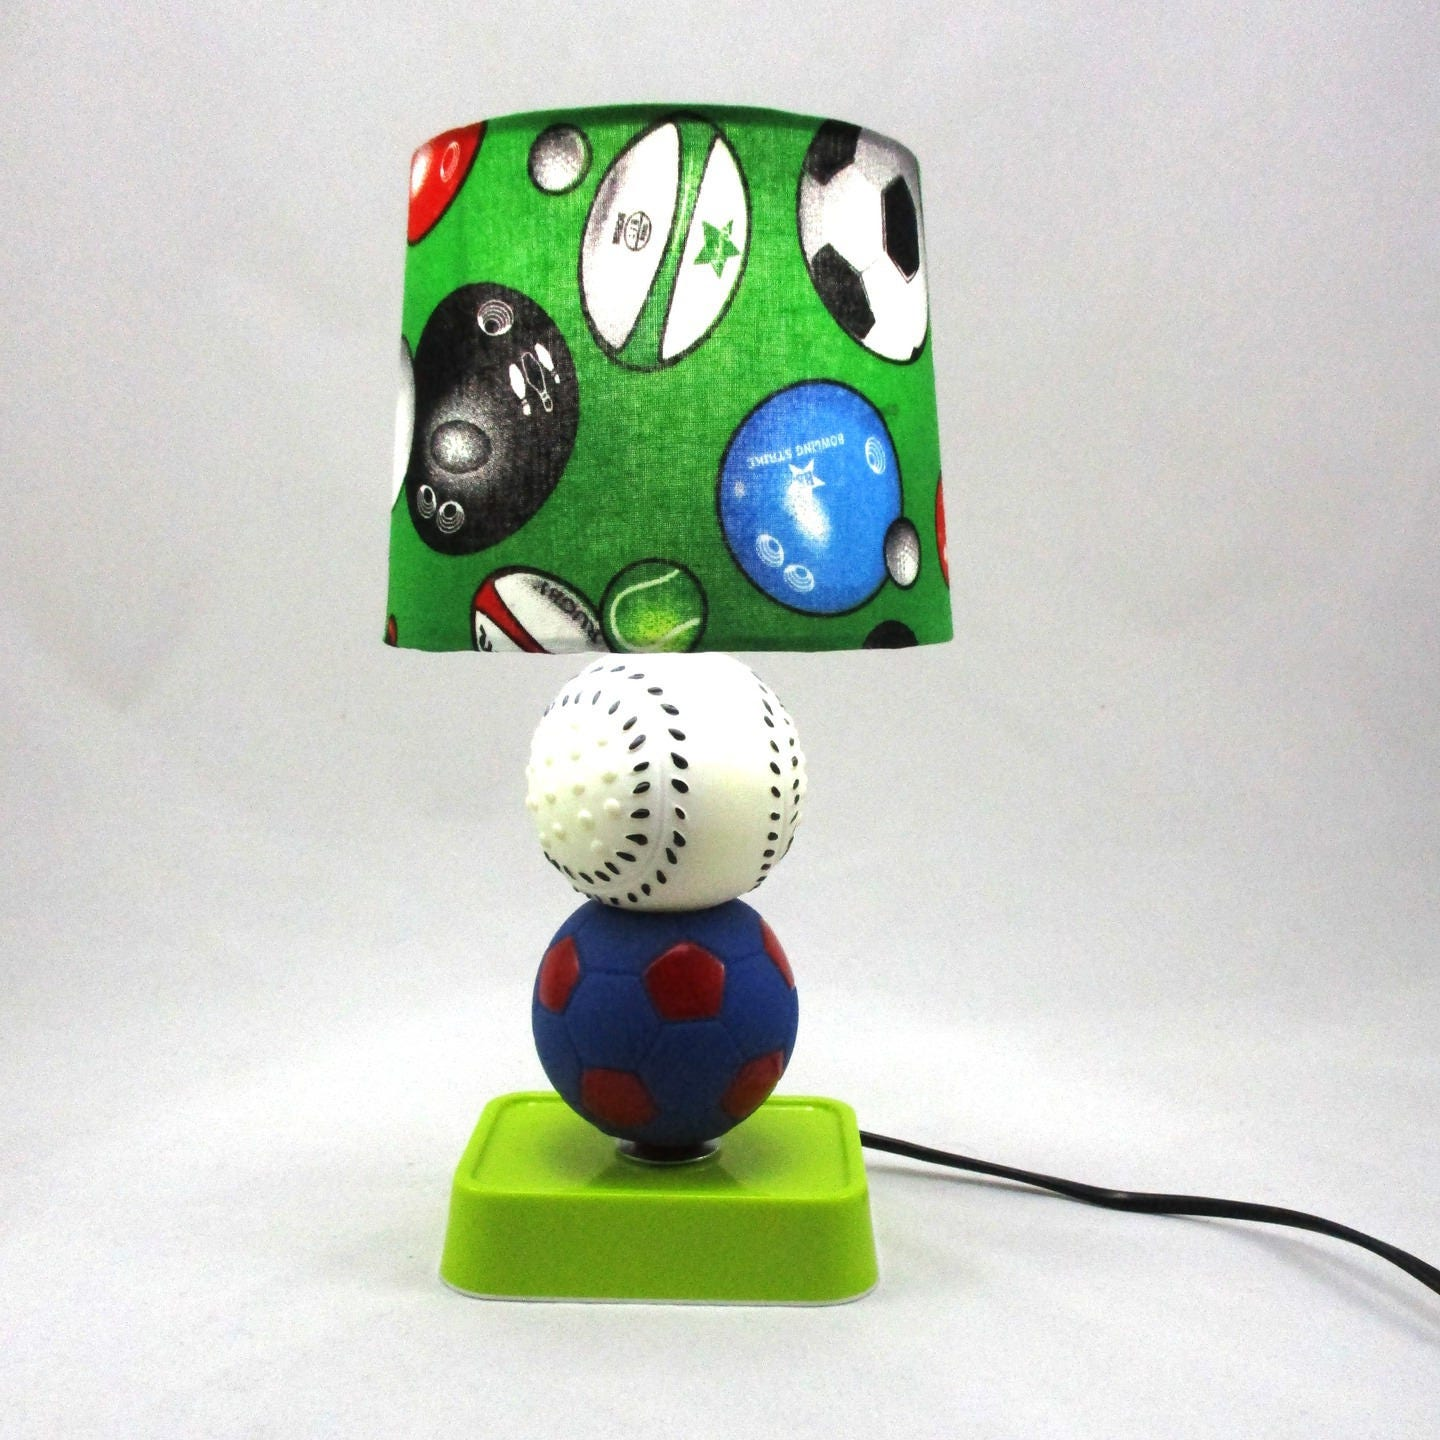 Lampe enfant chevet sportif ballon foot balle base ball - Lampe de chevet enfant ...